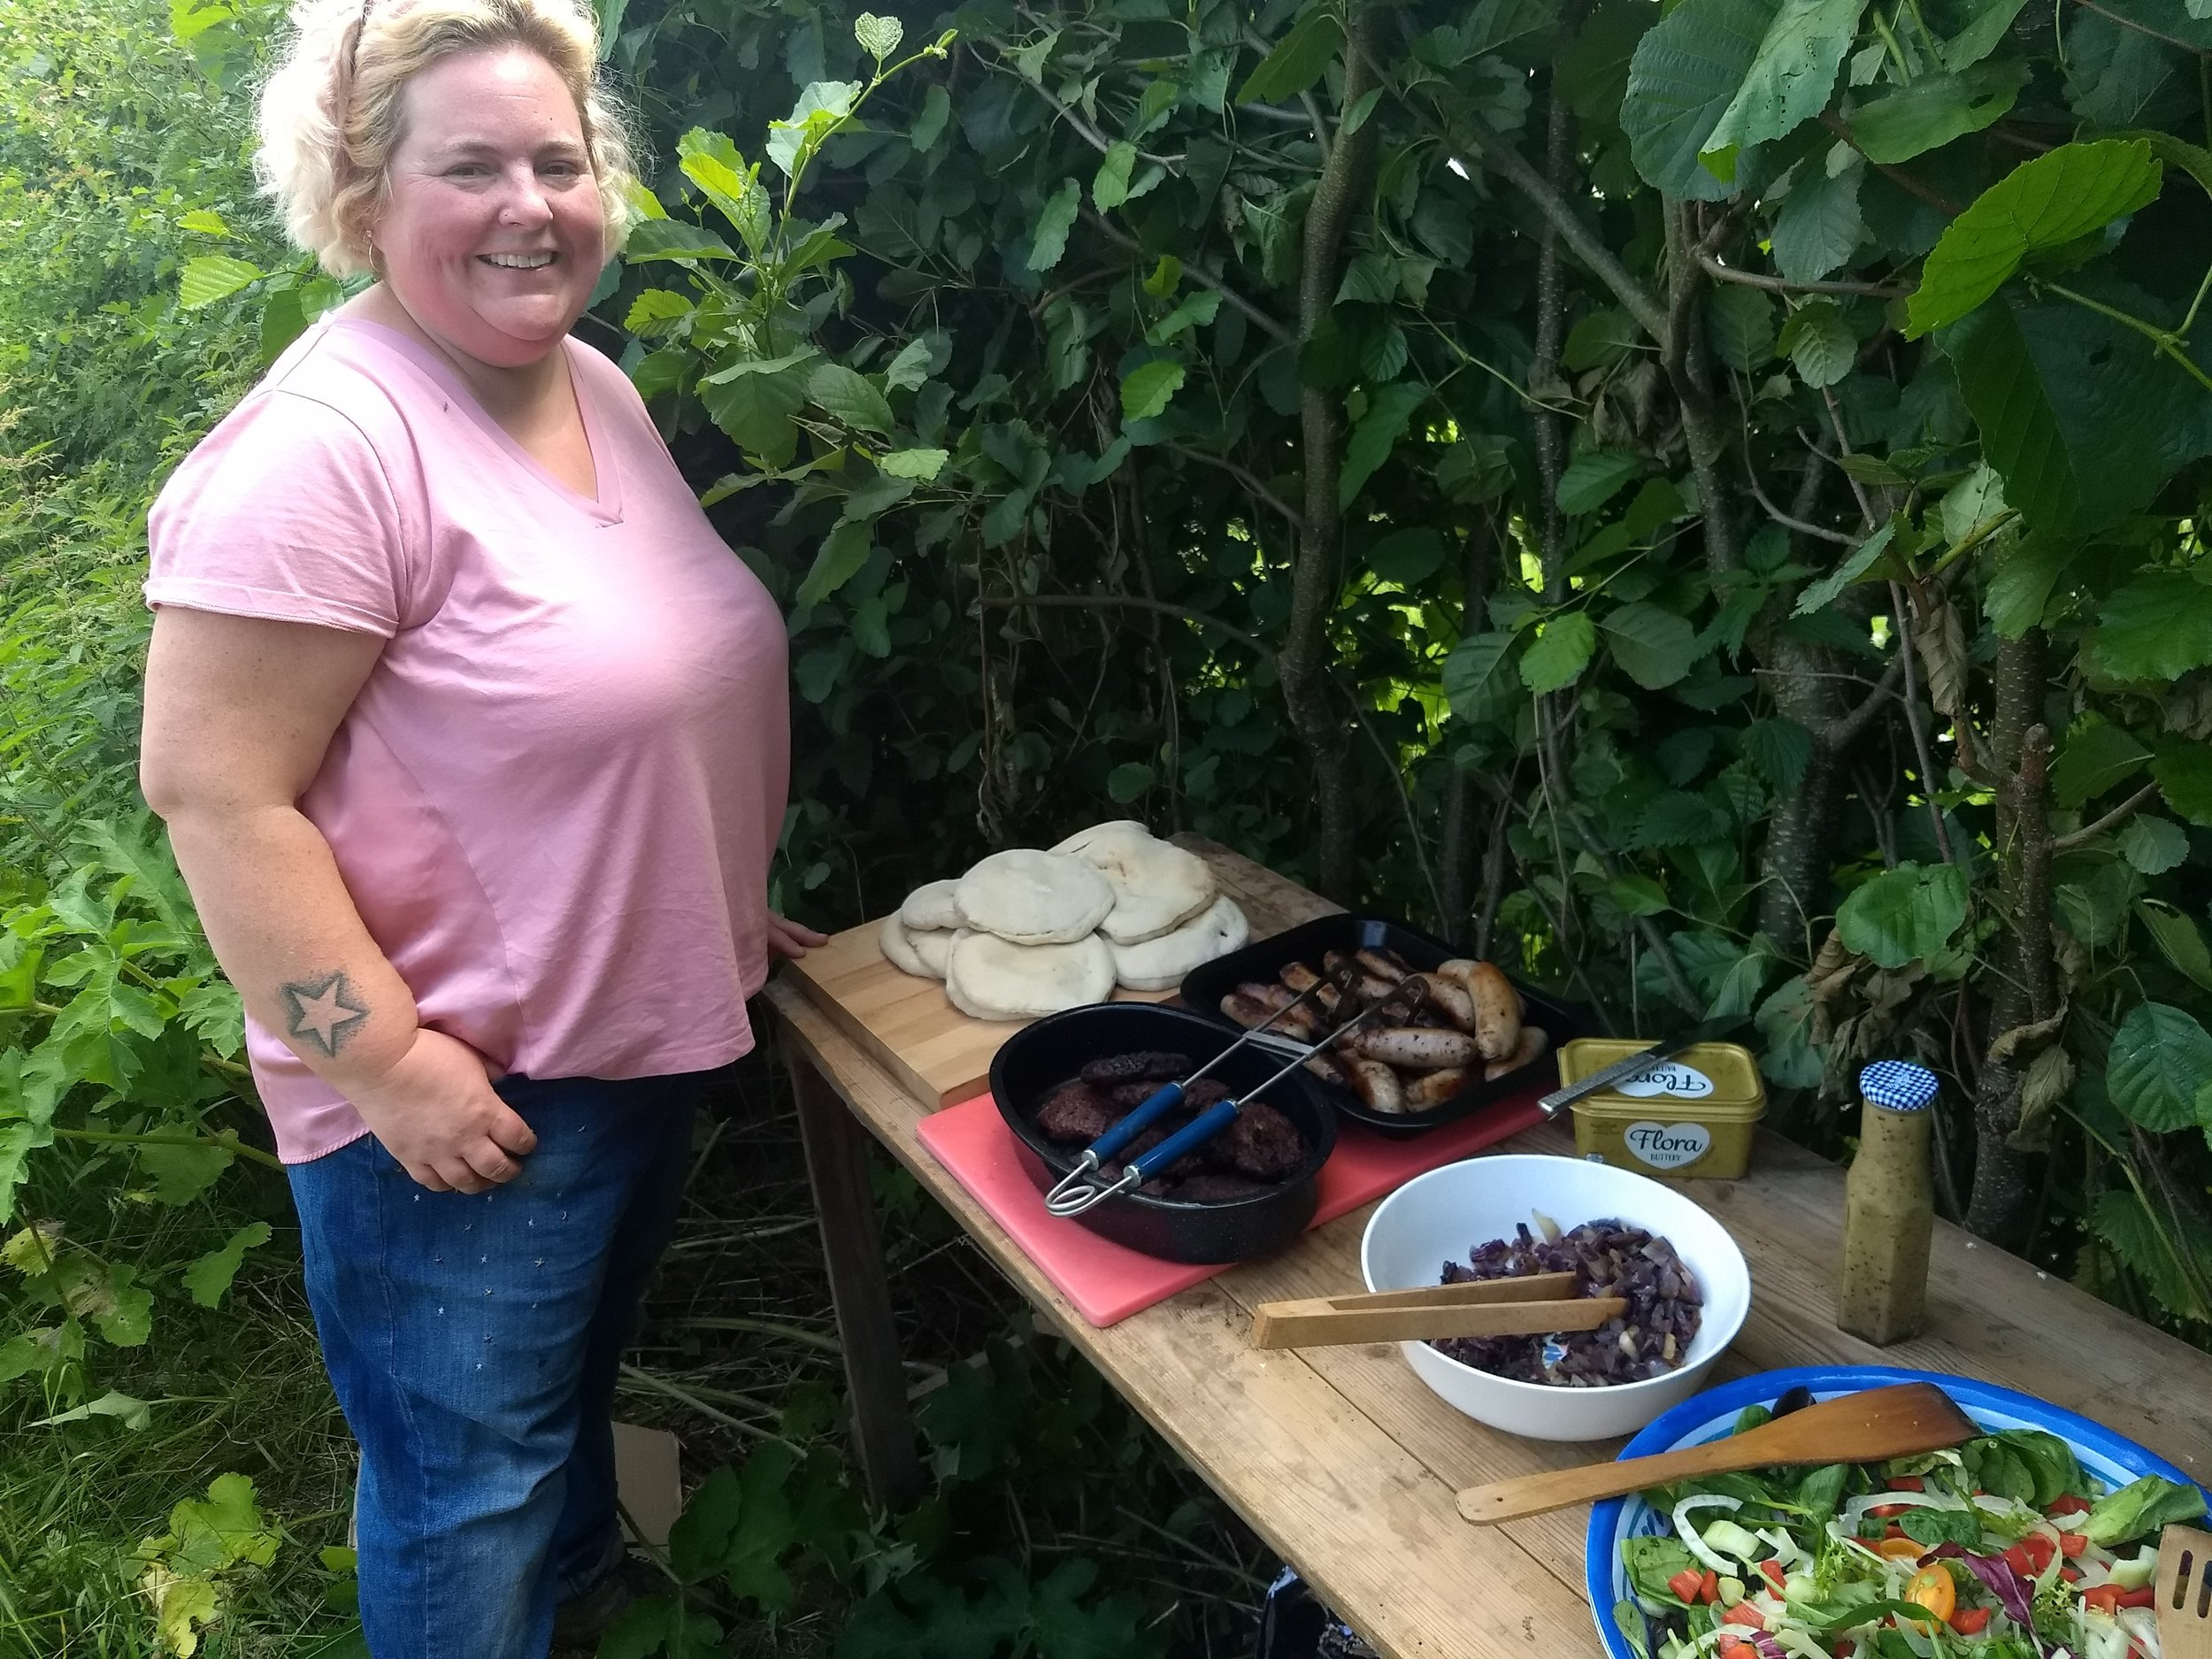 Rhiannan and her lovely salad and cooked meats